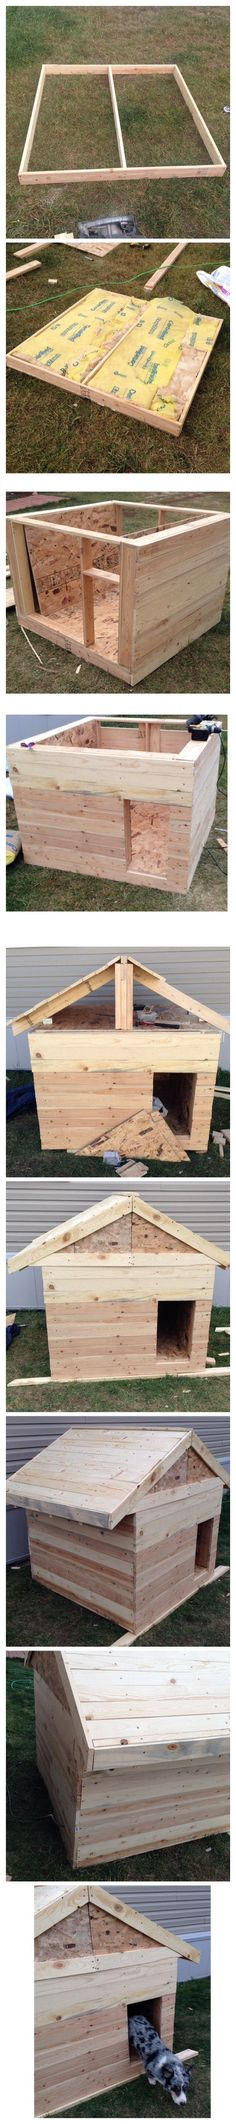 Building a heated and insulated dog house with minimal tools- a ruler, marker…